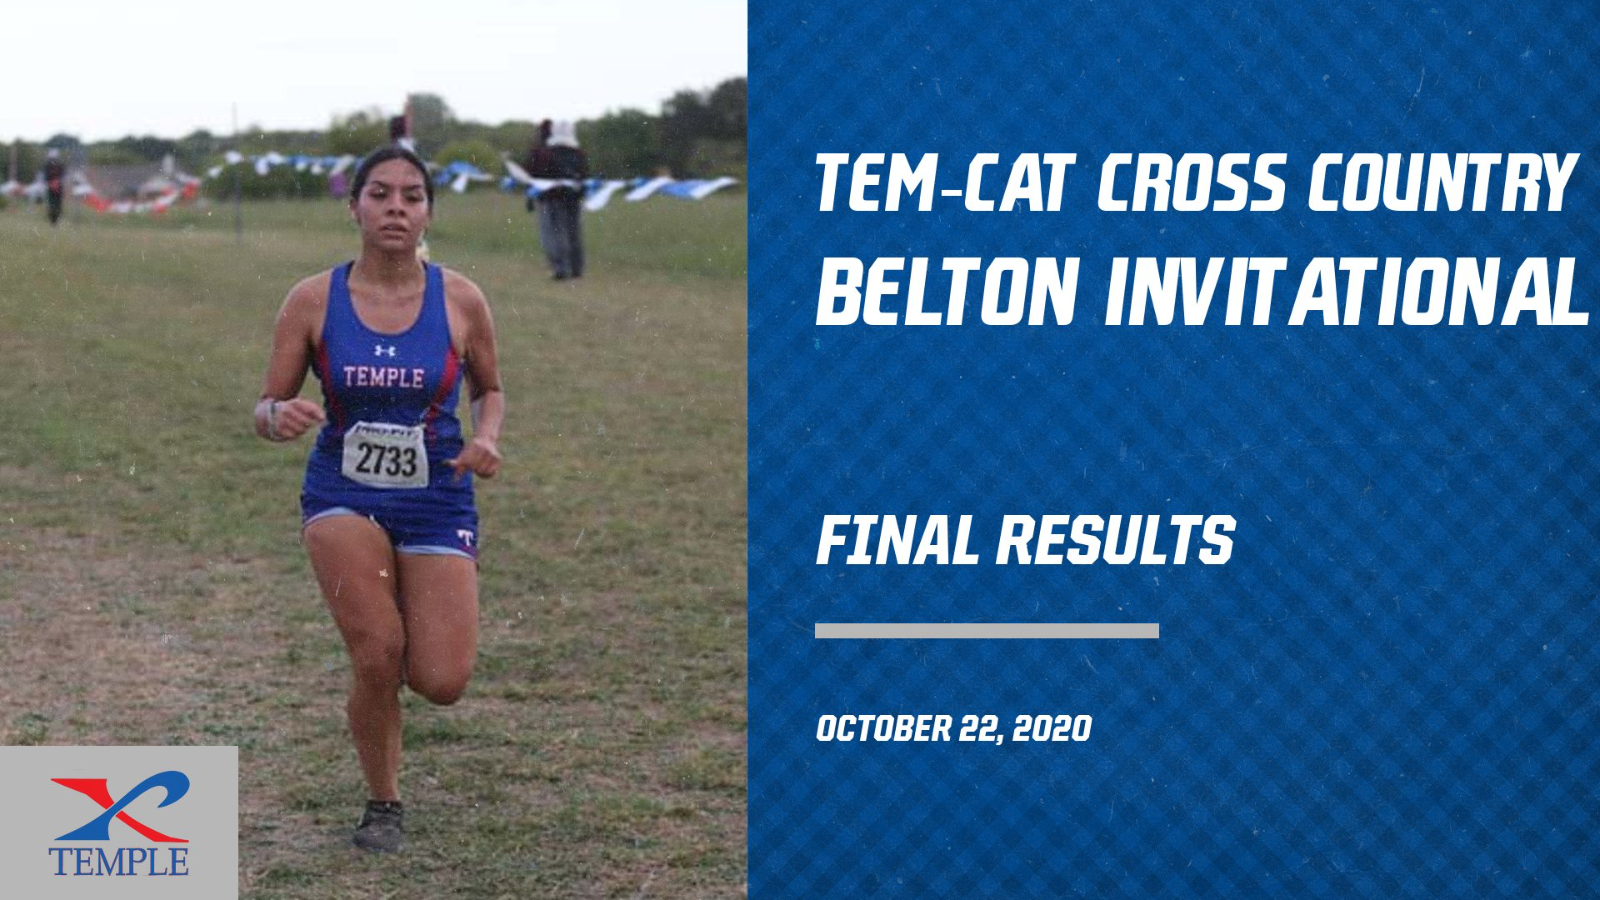 Tem-Cat Cross Country takes 3rd at the Belton Invitational